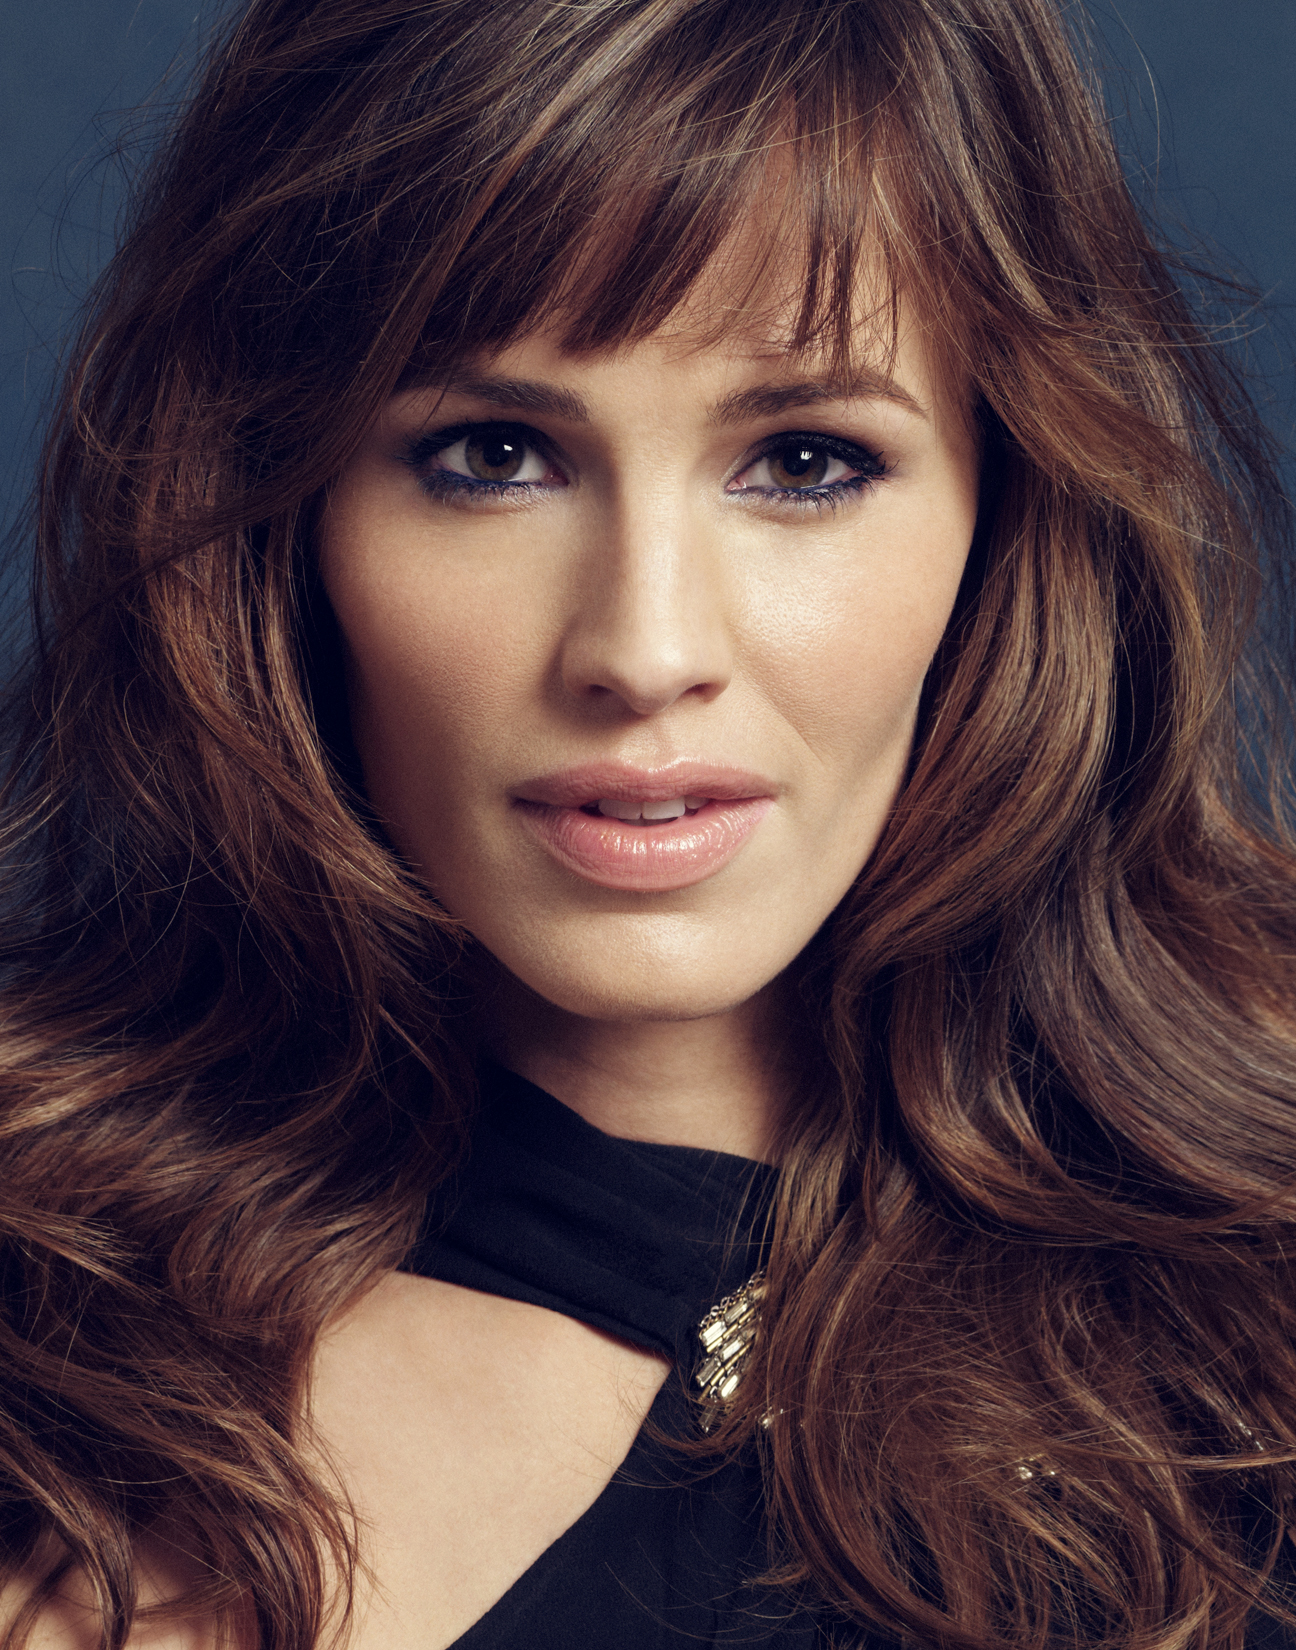 Jennifer-Garner-by-Robert-Ascroft-DUP.jpg